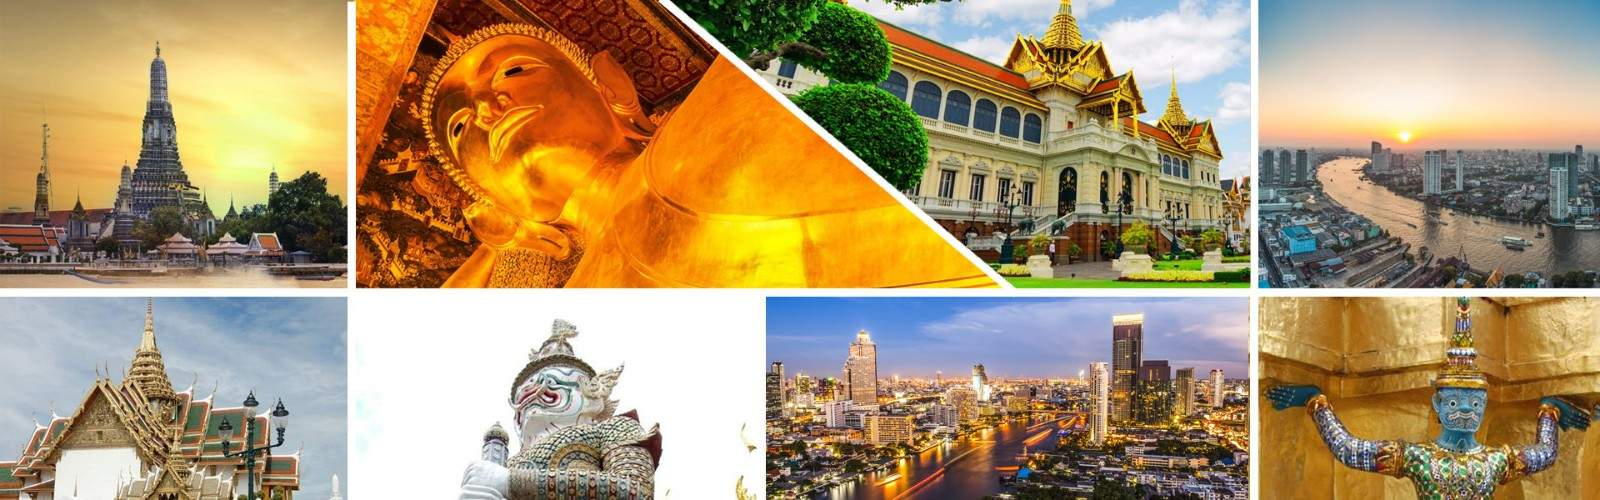 Wendy Wu Tours Bangkok Holidays